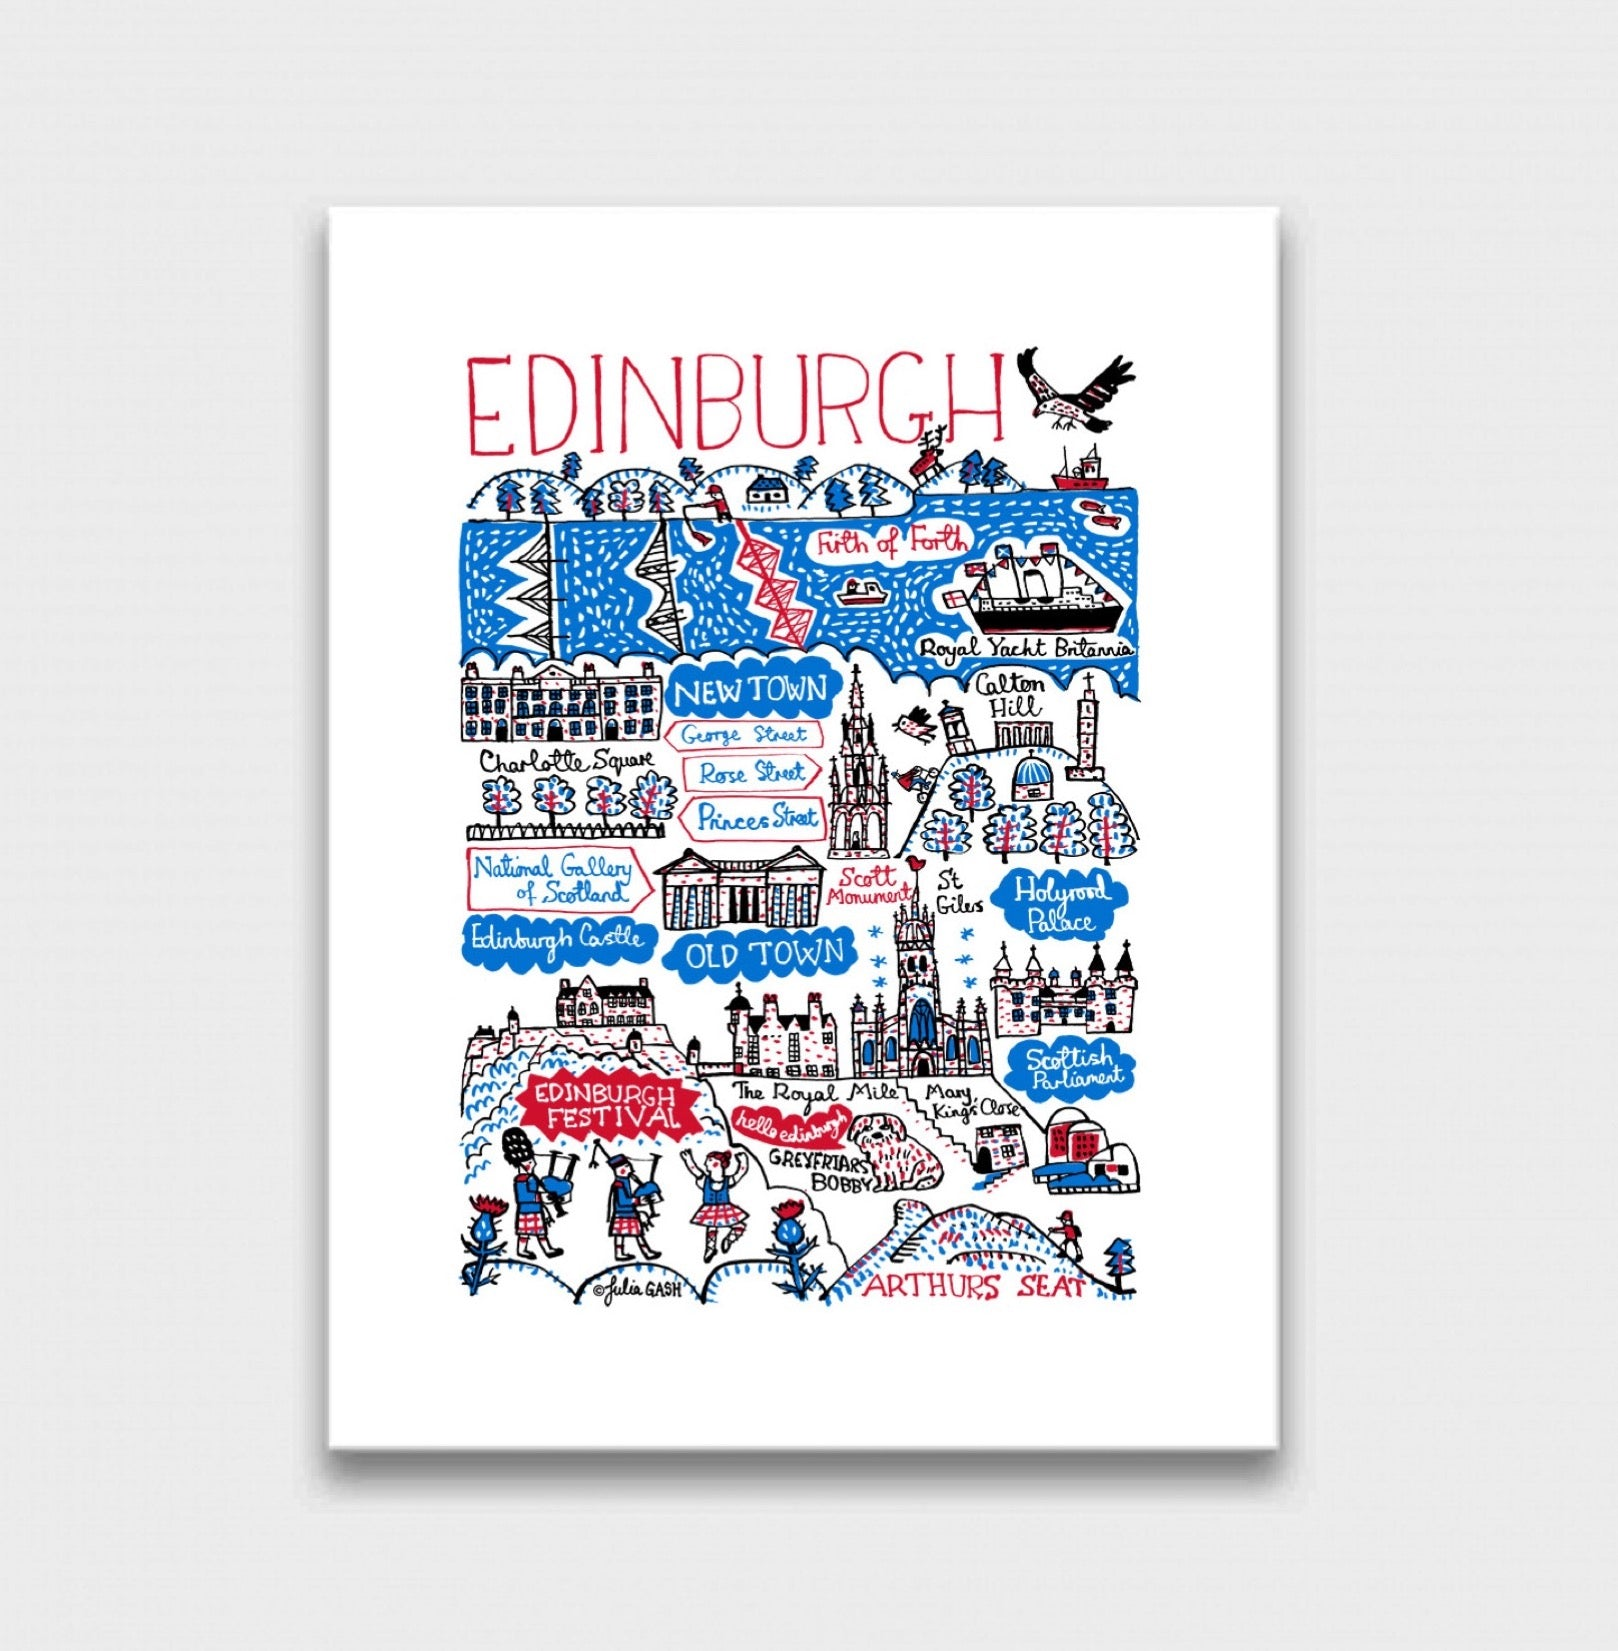 Edinburgh Art Print - Julia Gash